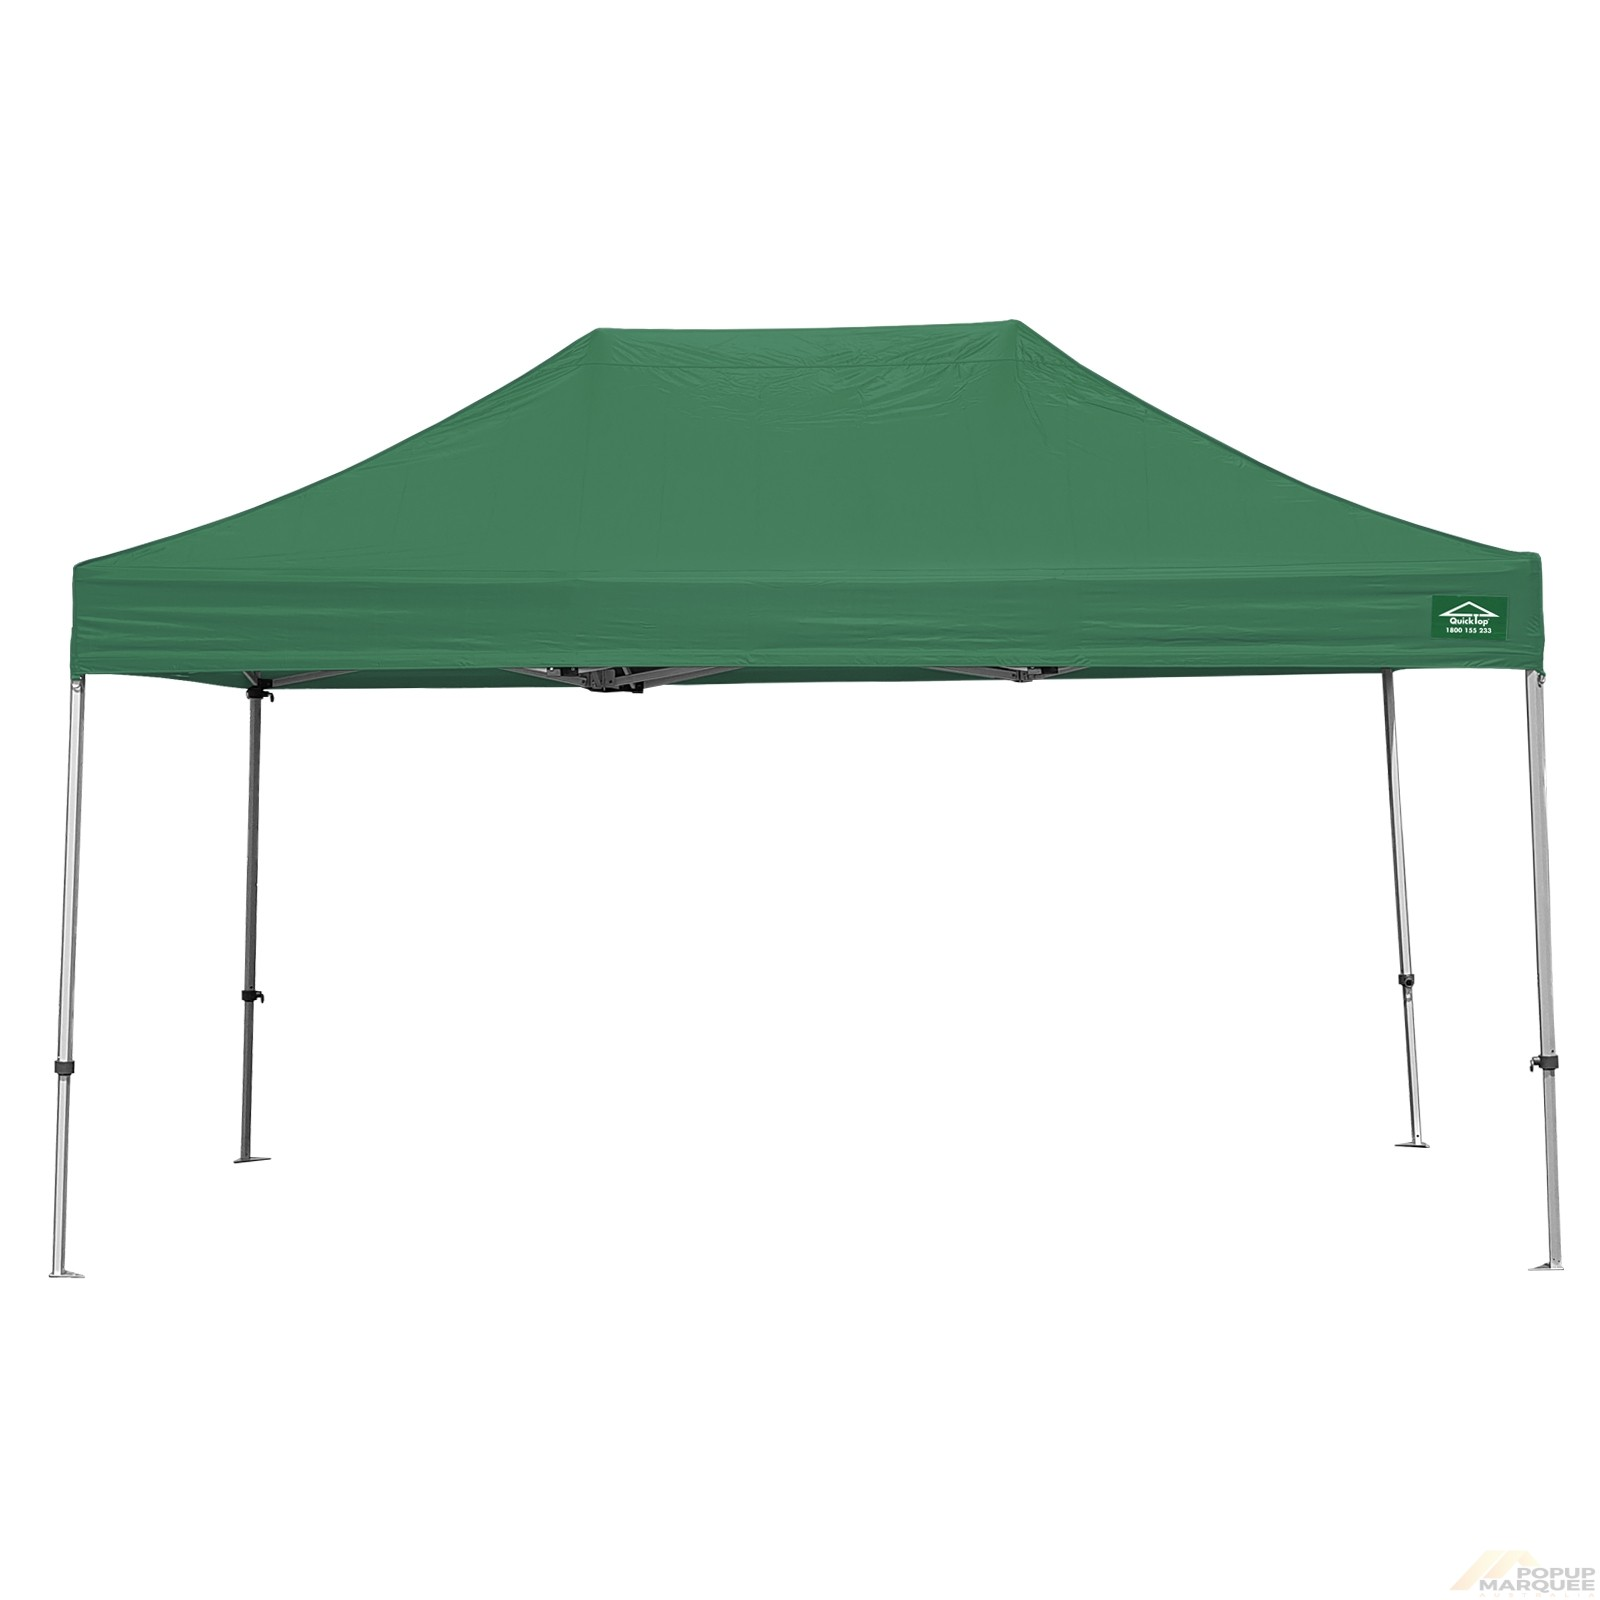 QuickTop 3x4.5m Green Pop Up Marquee